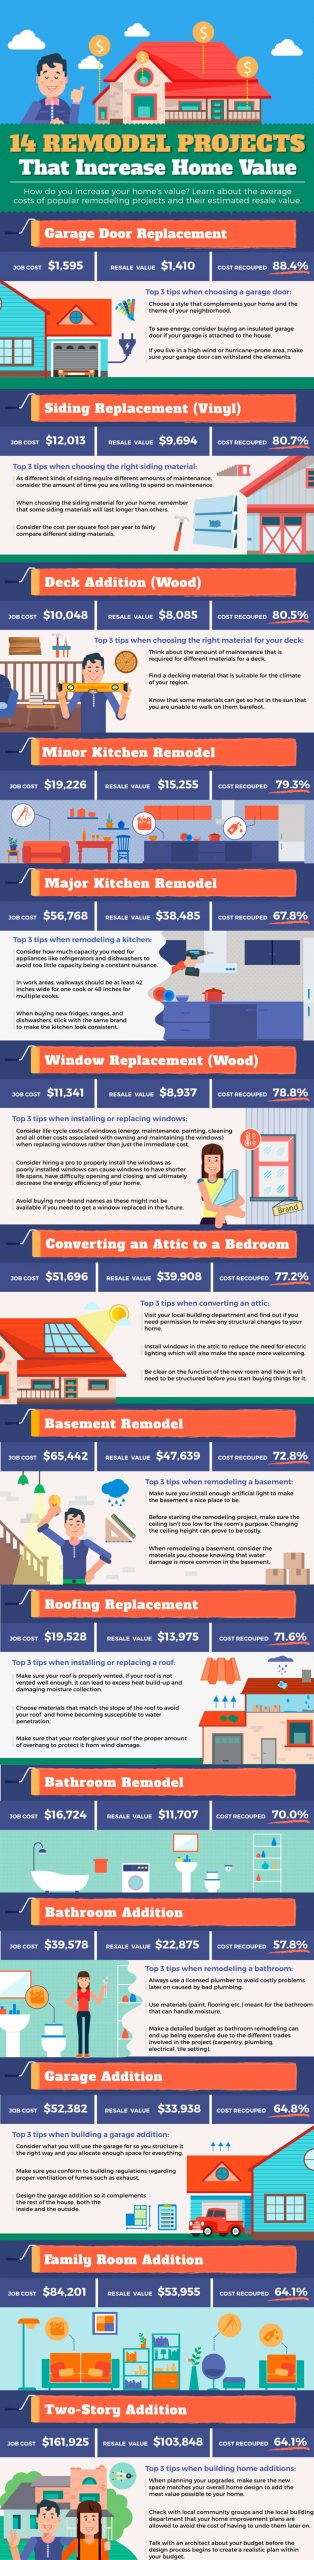 14 Remodel Projects That Increase Home Value Infographic by Heritage Contracting WNY